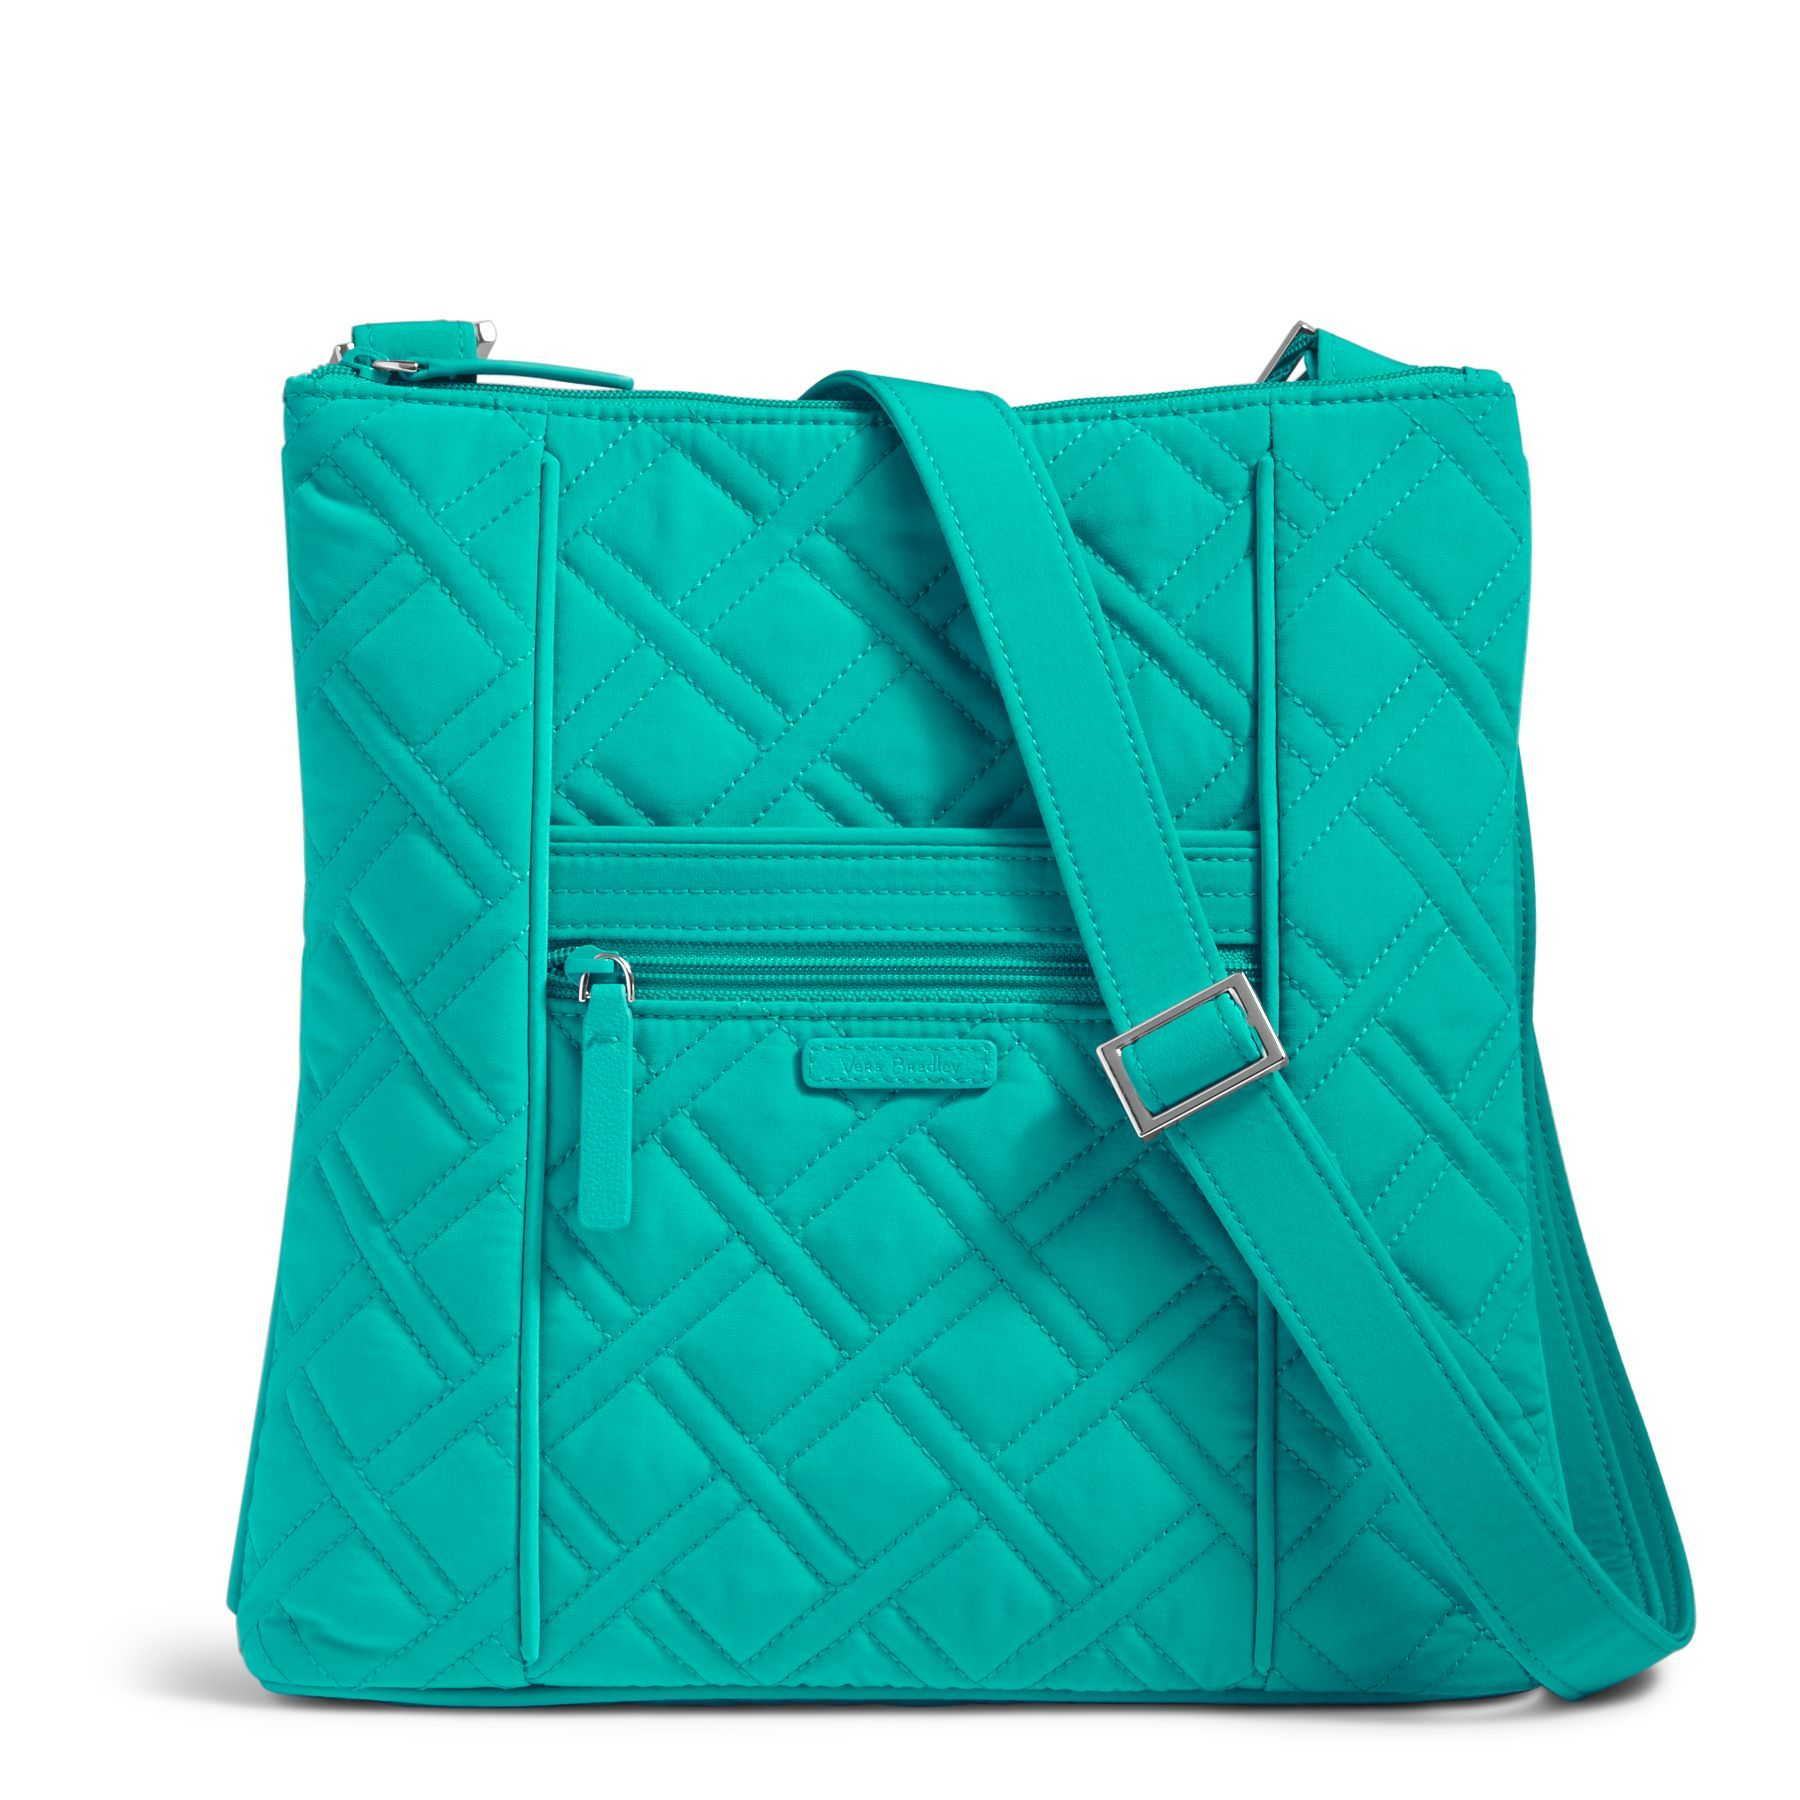 Crossbody Bags Are The Best For Hands Free Convenience Going To